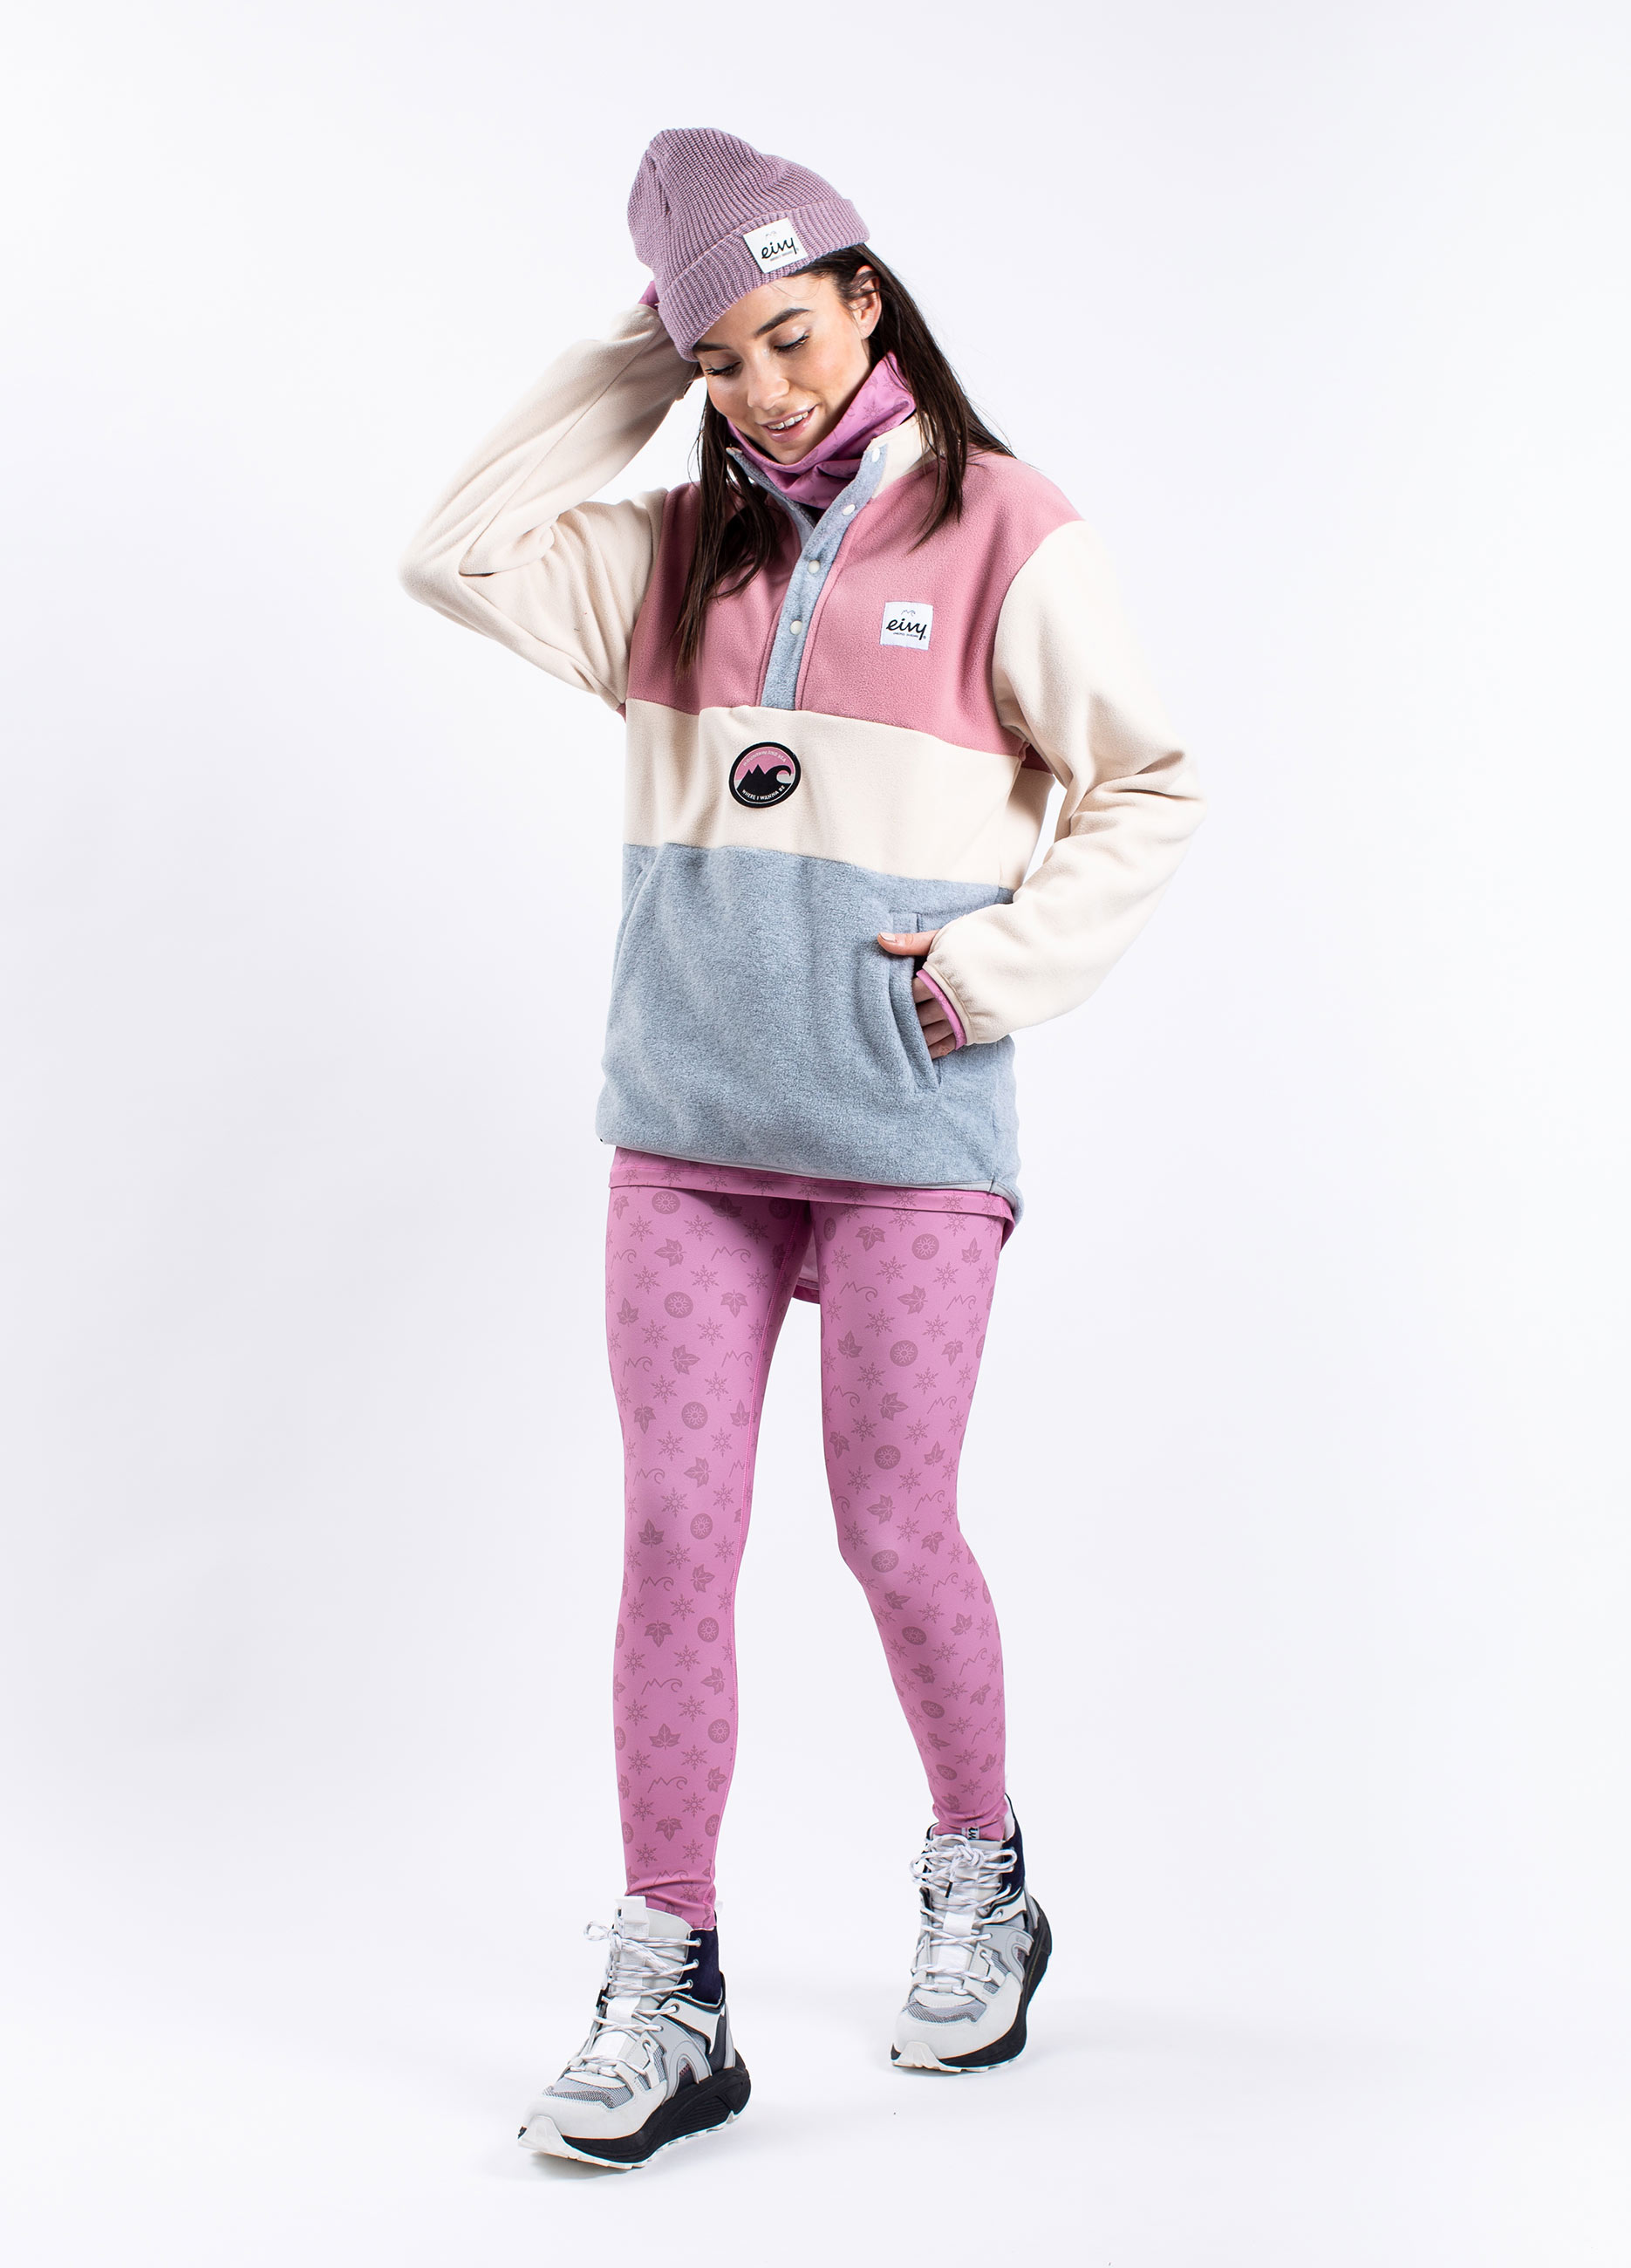 slider-image-https://www.eivyclothing.com/image/3694/Mix_and_match_12_Update.jpg